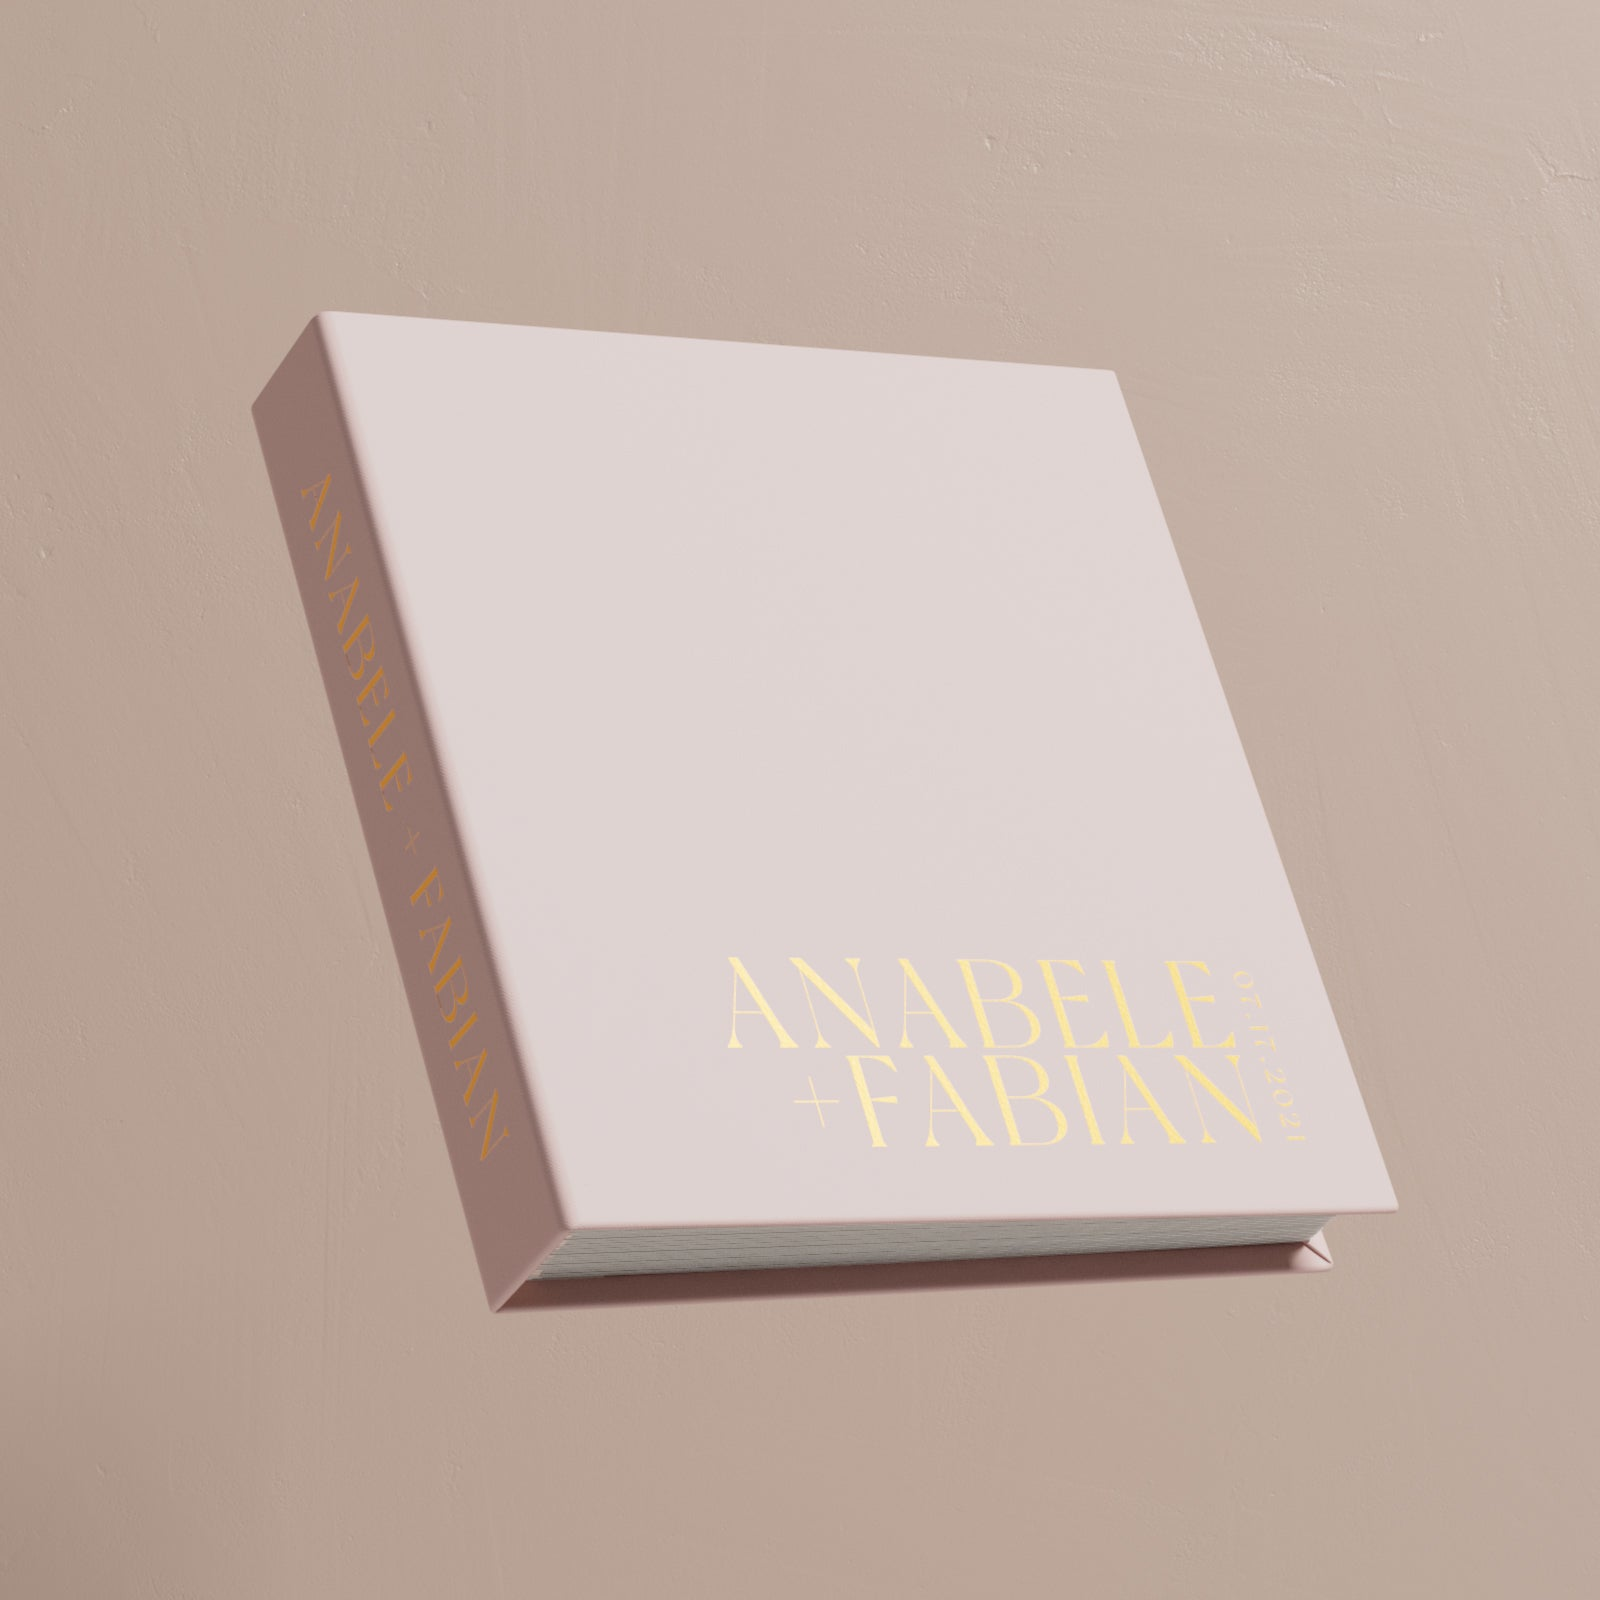 Square Wedding Standard Photo album, Cream Color, Anniversary gift